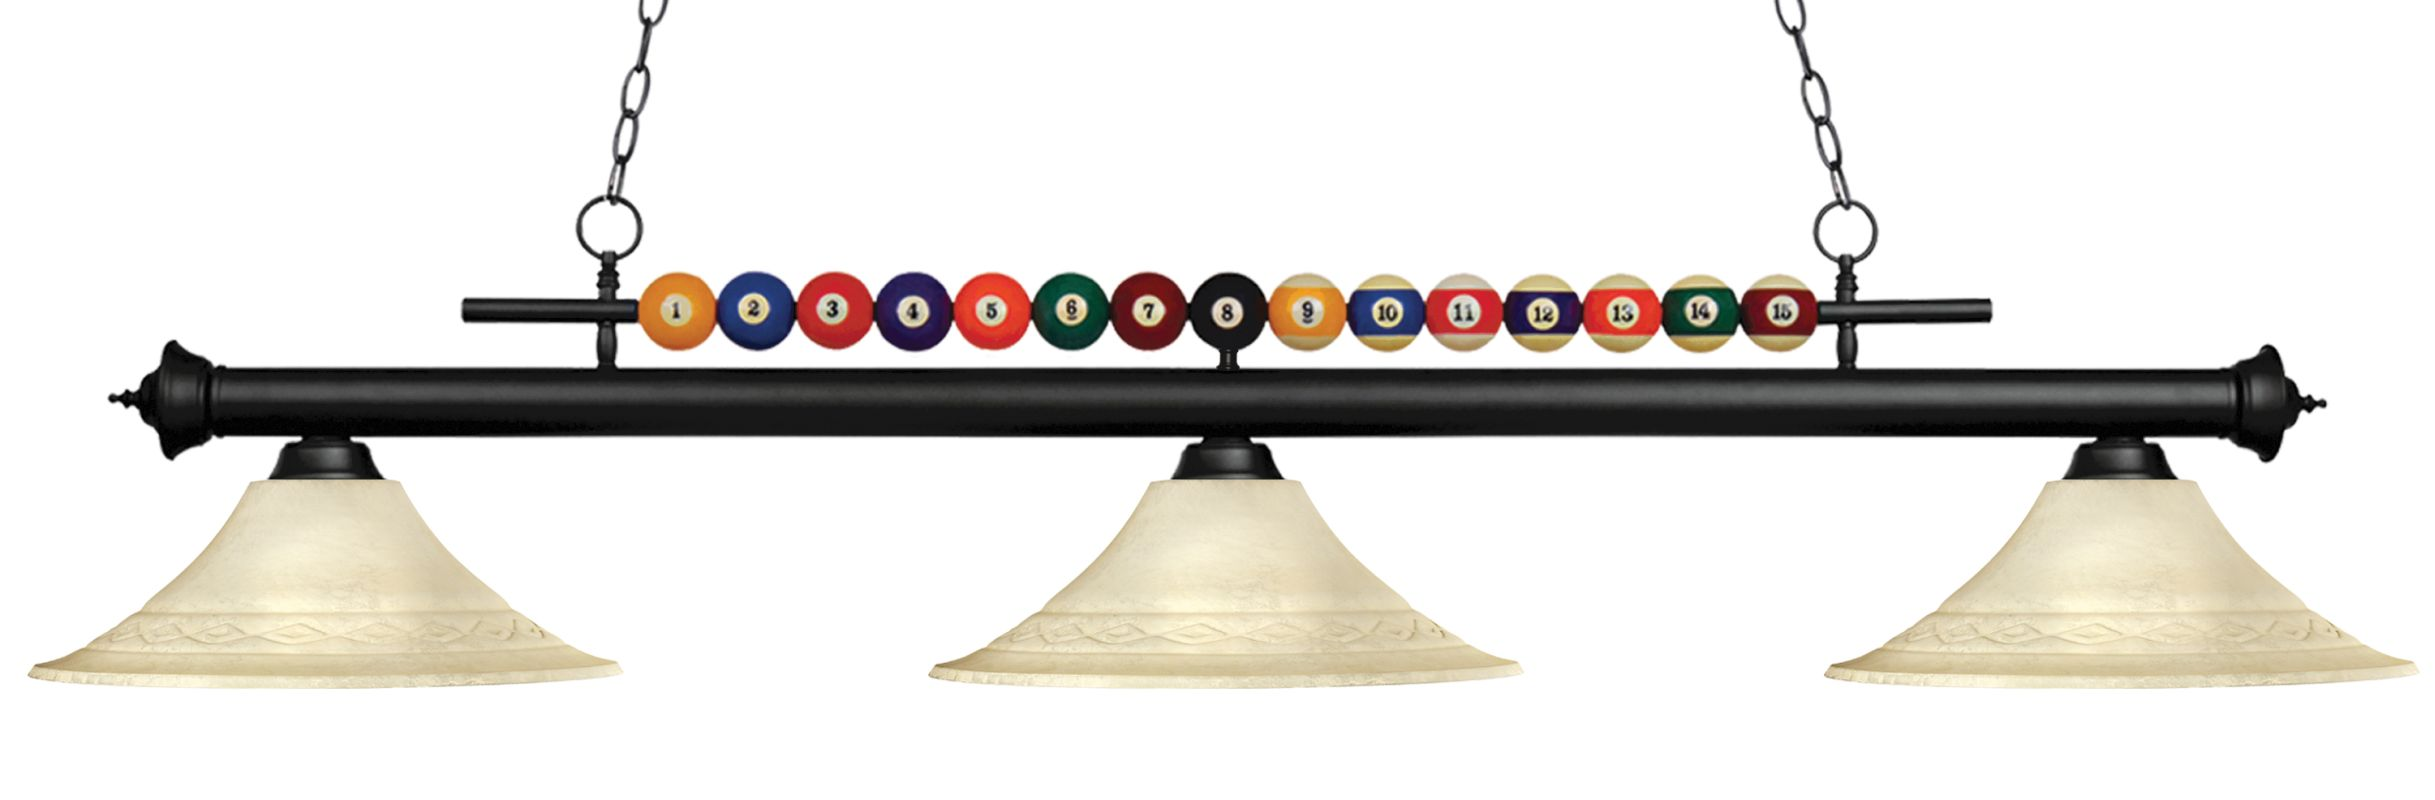 Z-Lite 170-FGM16 Shark 3 Light Billiard Chandelier with Cream Glass